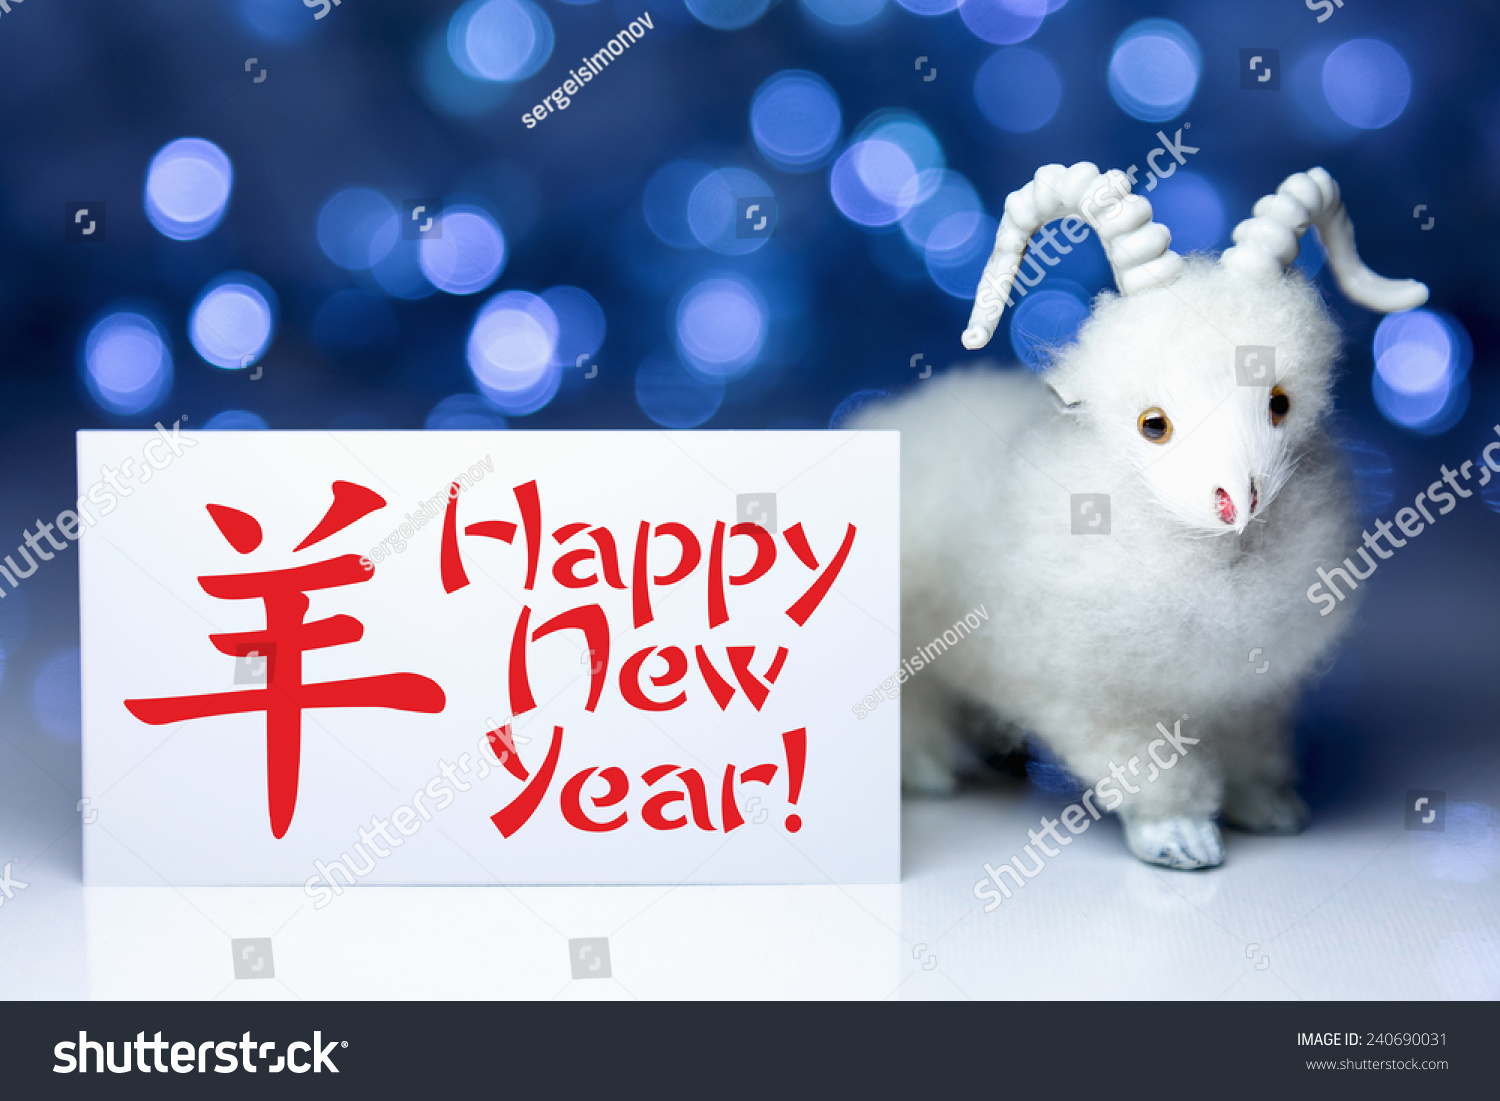 New year greeting card white goat stock photo 240690031 shutterstock new year greeting card with white goat or sheep toy the chinese symbol of 2015 year kristyandbryce Image collections